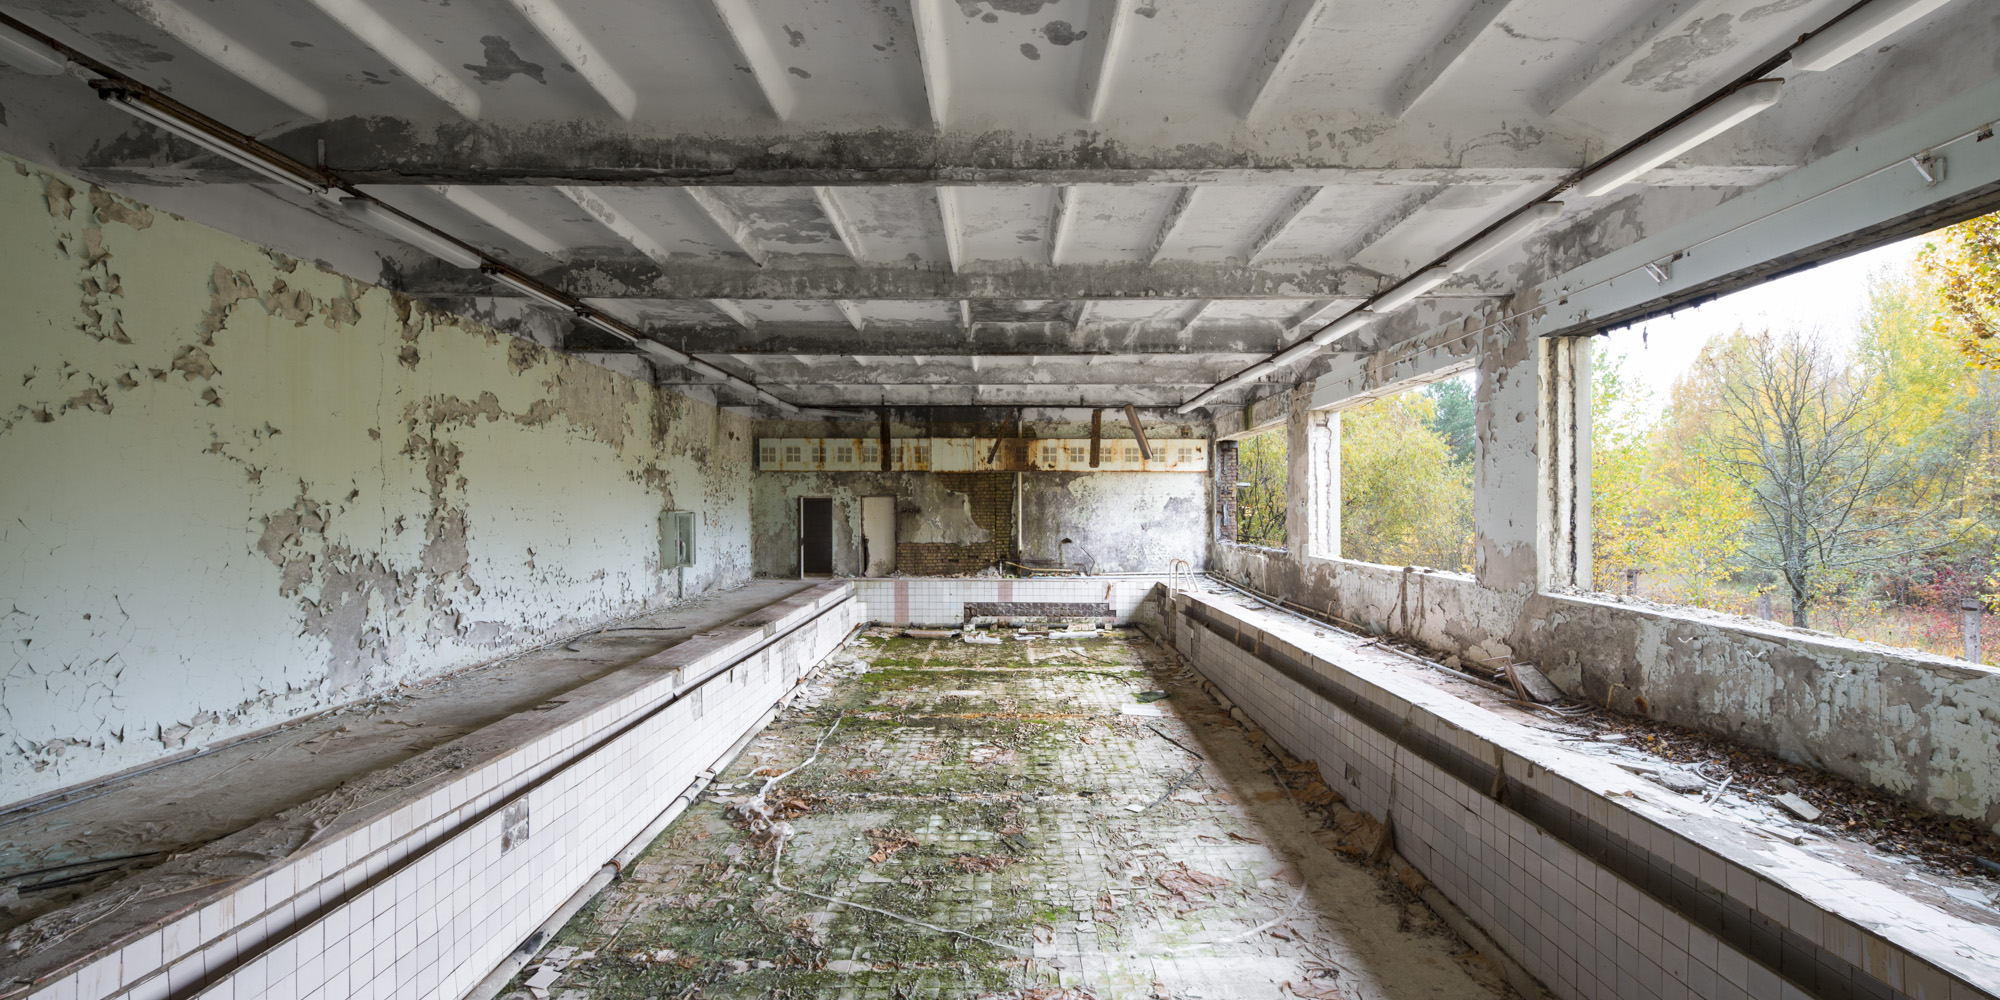 the final pool - THE INVISIBLE  CITY - cesar azcarate photography, galleries, the invisible city